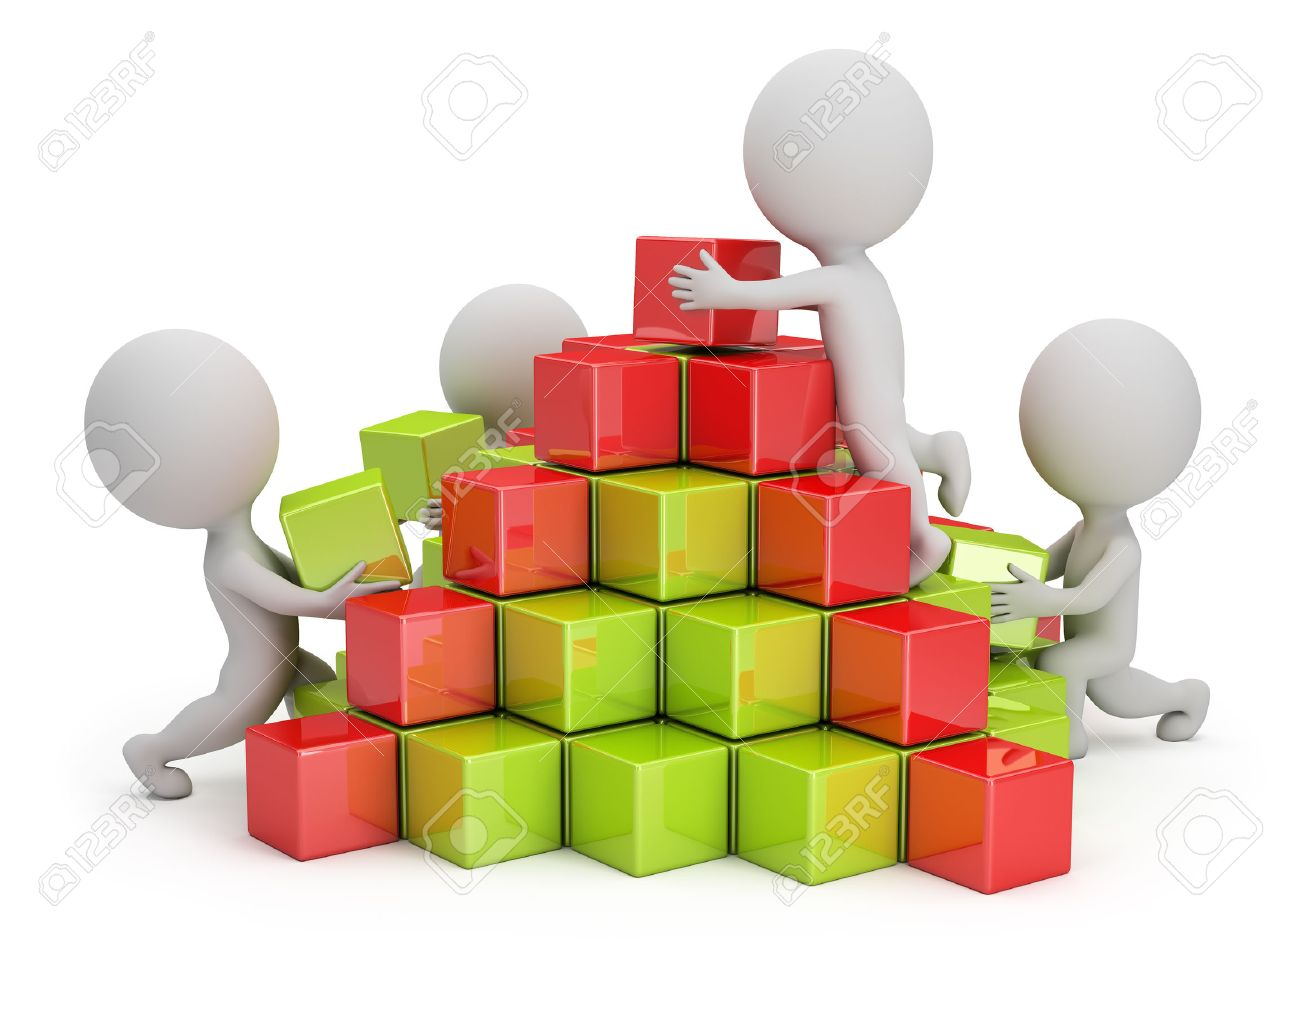 3d small people are building a pyramid of colored cubes 3d image White background - 26583776